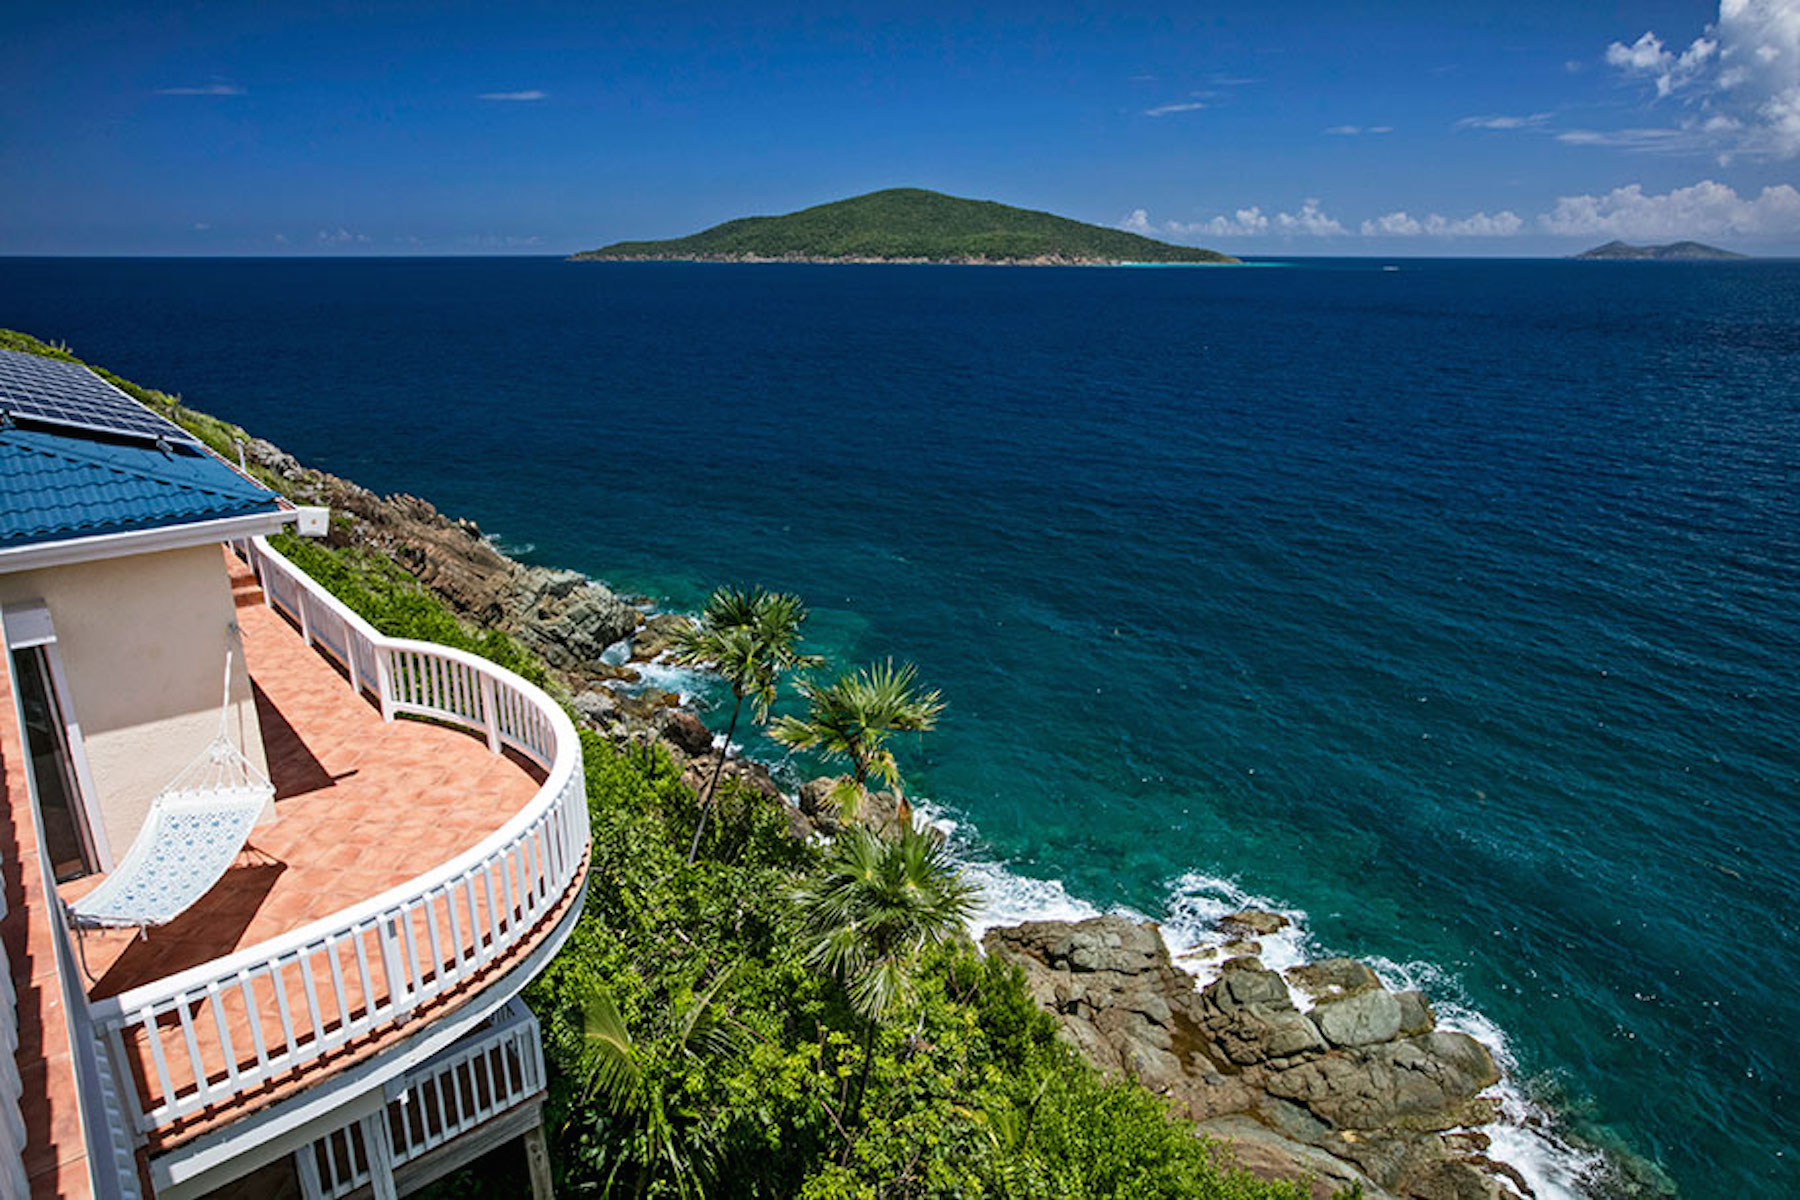 Single Family Home for Sale at Serendipity 14-5 Peterborg St Thomas, Virgin Islands 00802 United States Virgin Islands